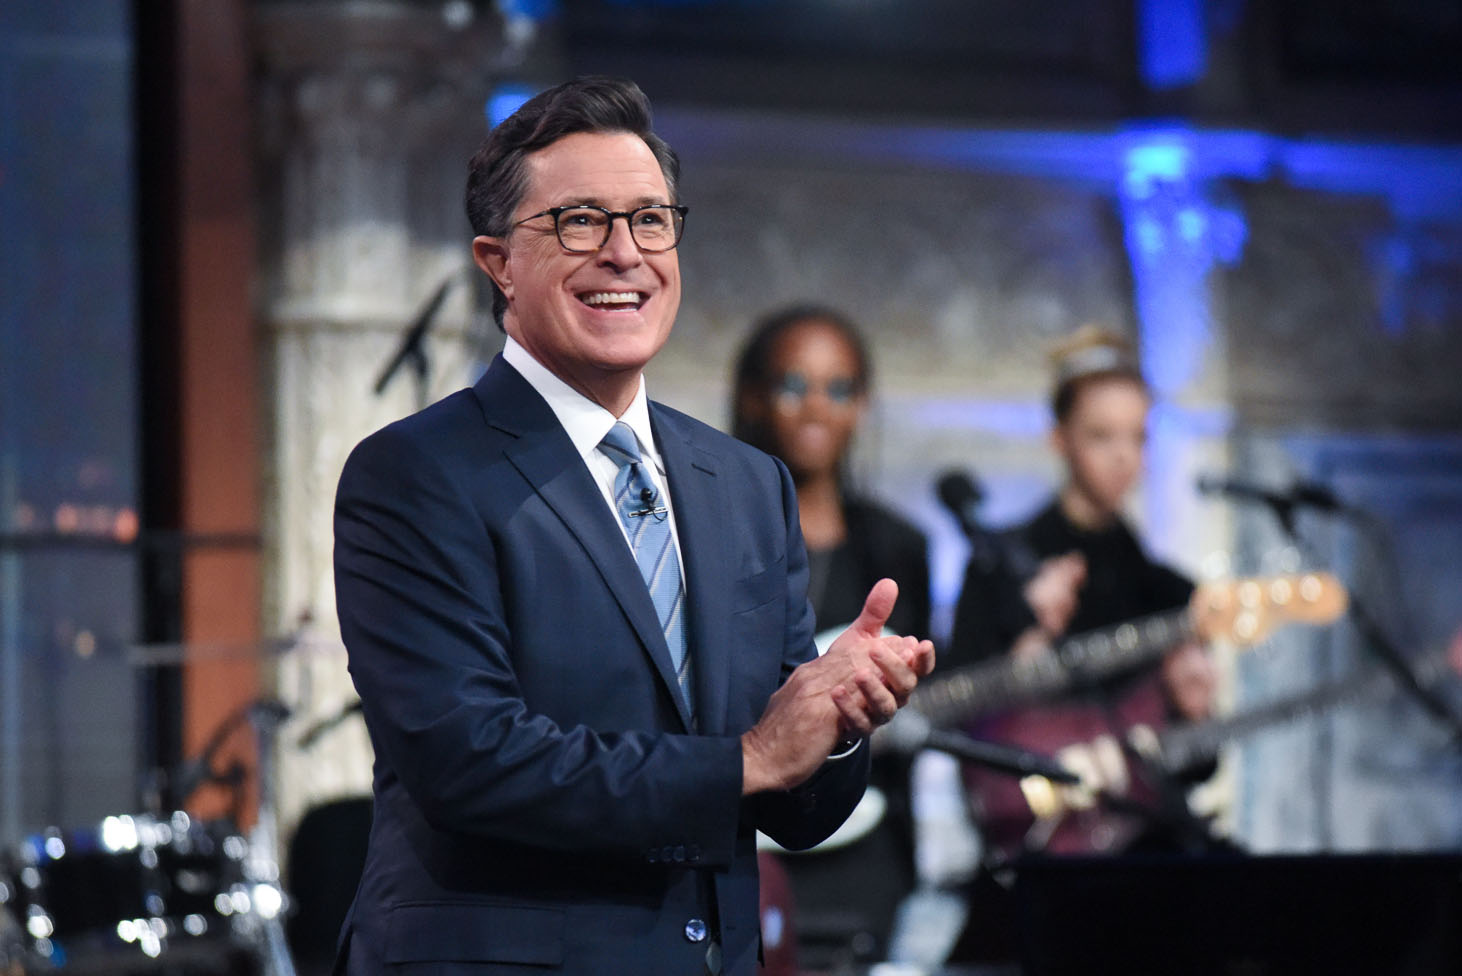 The Late Show with Stephen Colbert during Thursday's August 17, 2017 show.